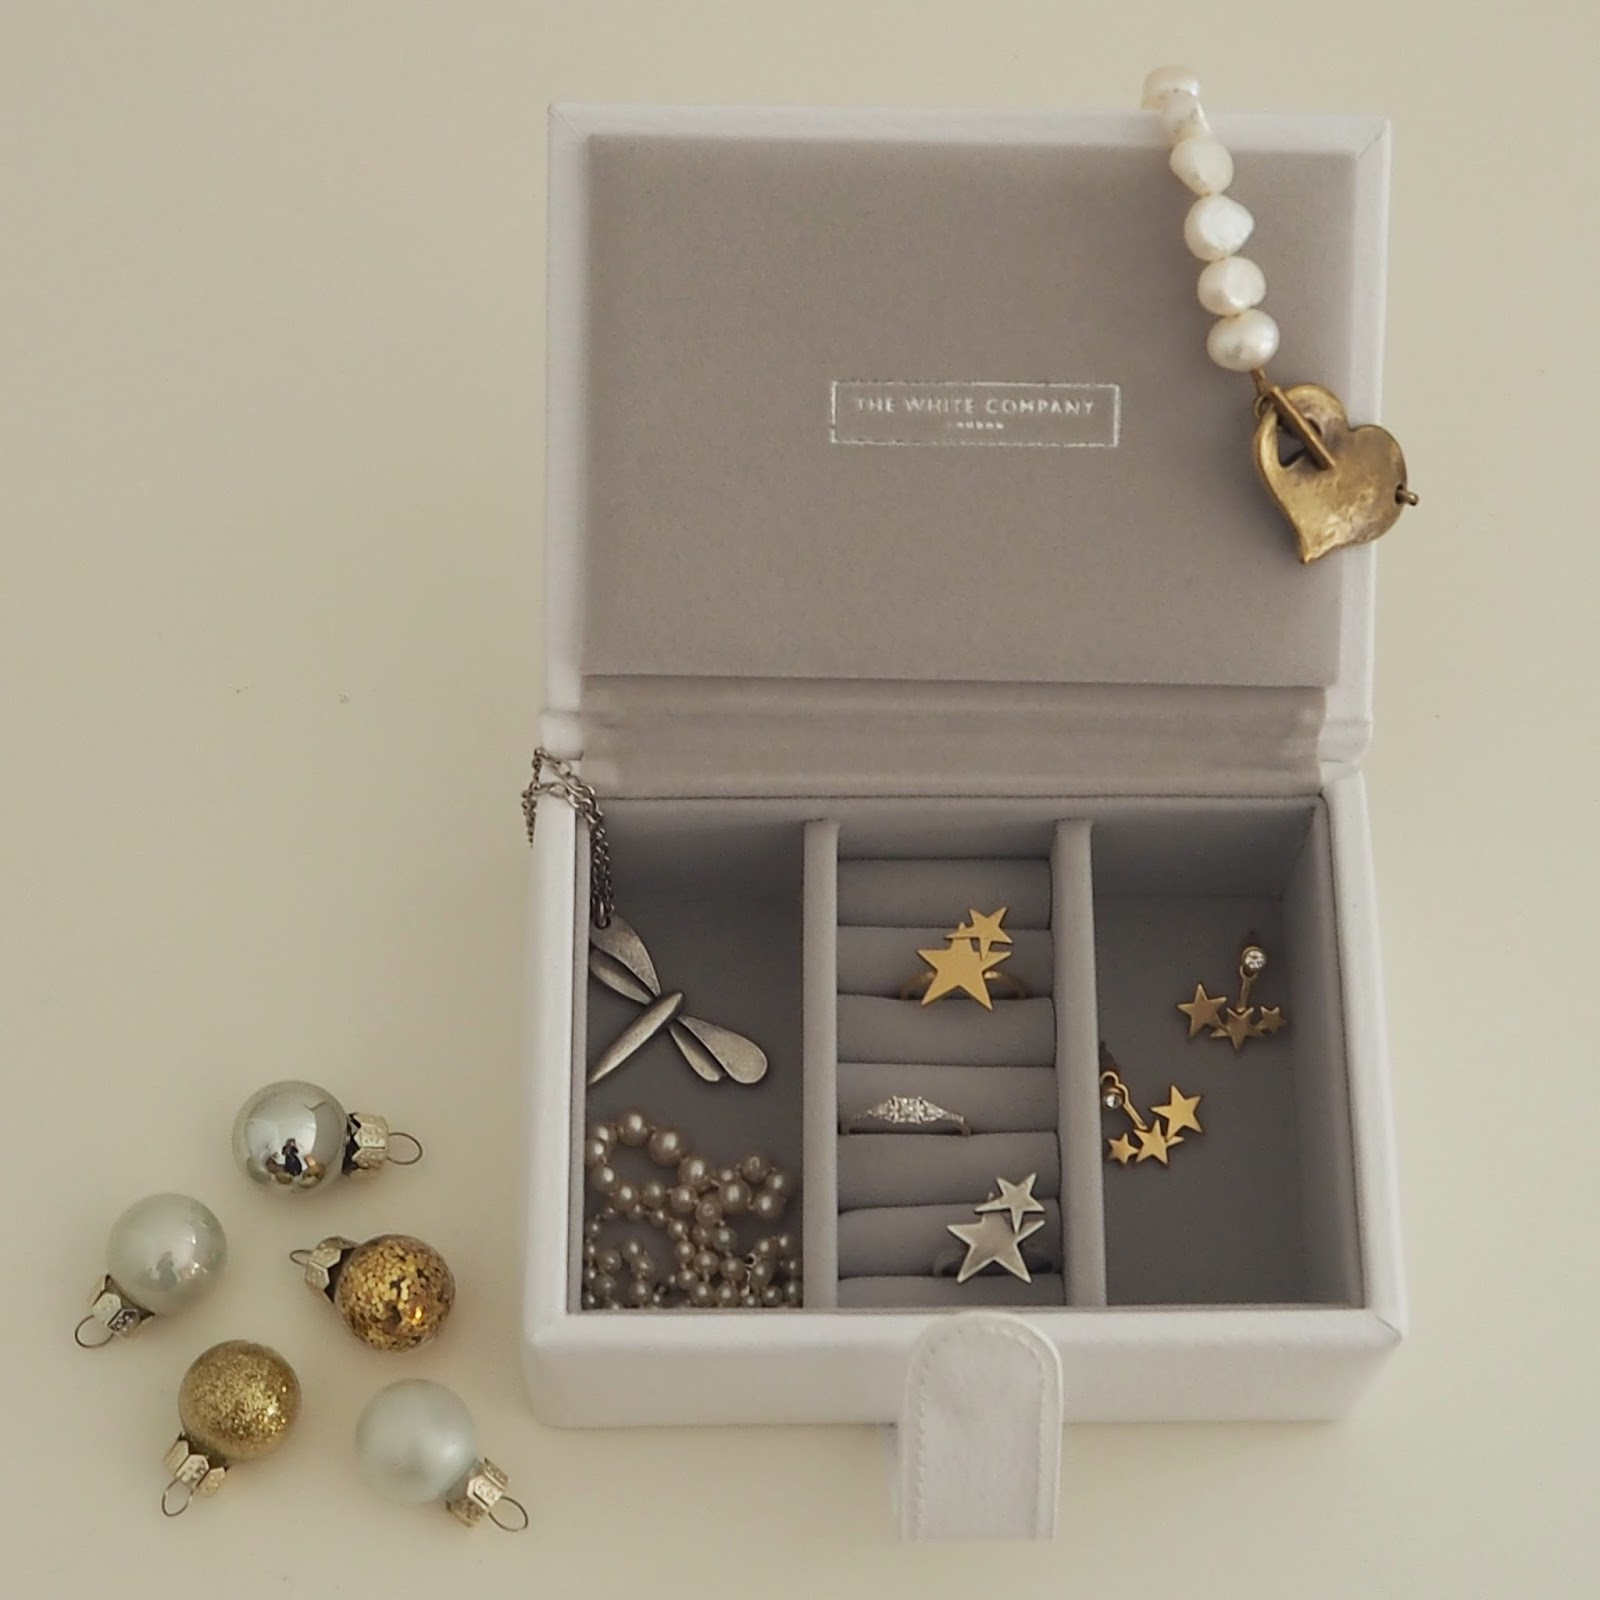 The White Company small leather travel jewellery box, Christmas gift guide